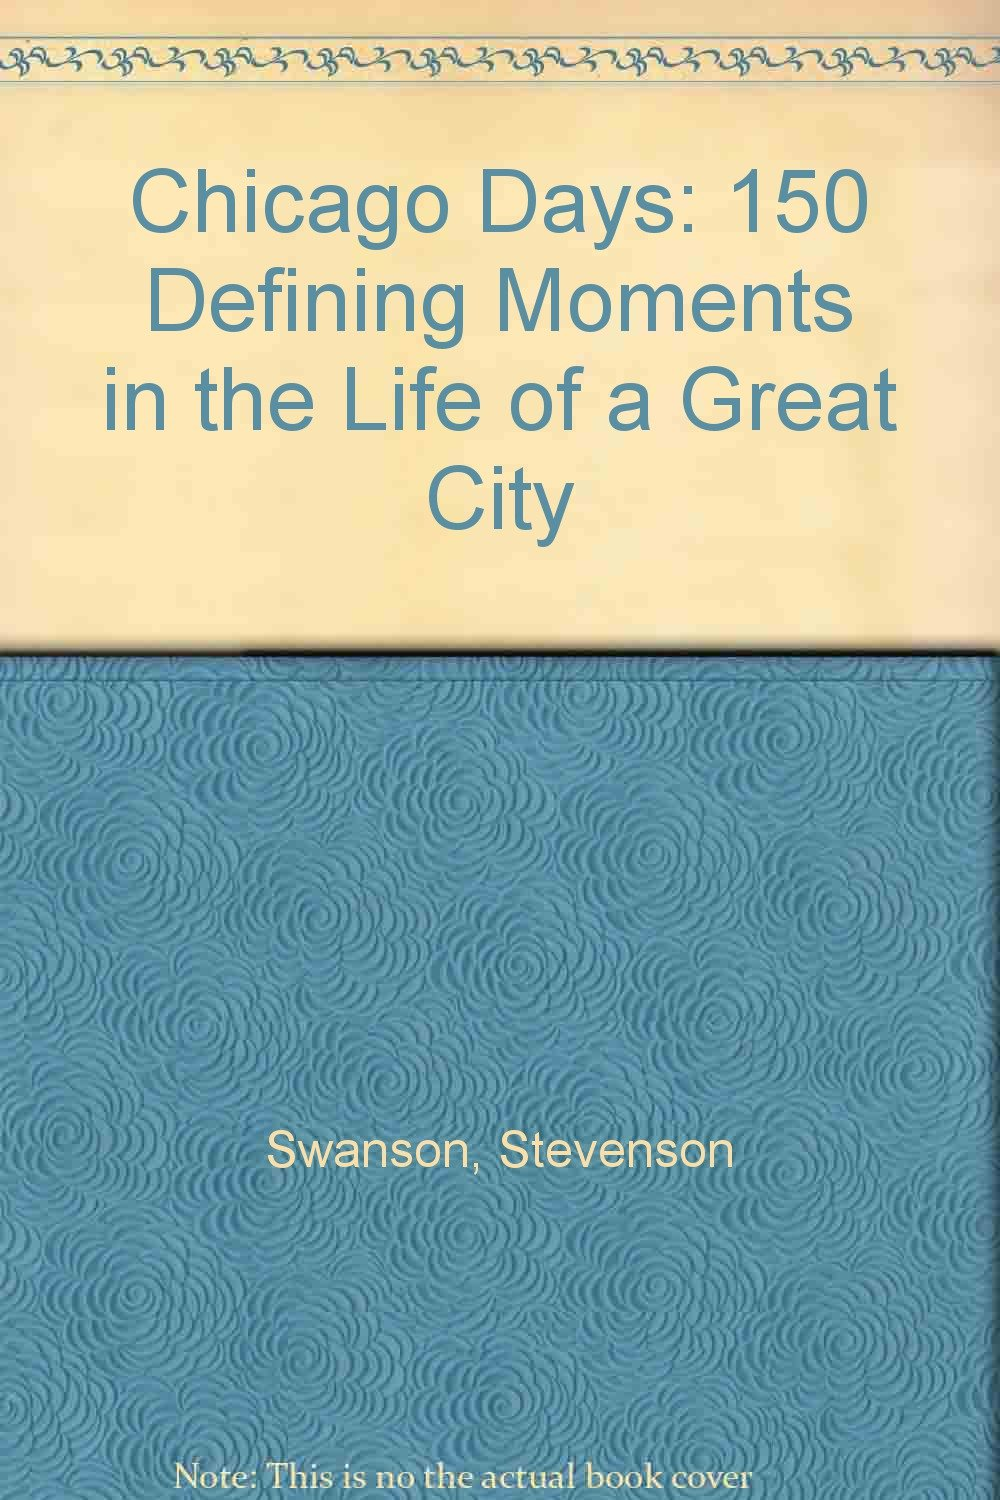 Chicago Days: 150 Defining Moments in the Life of a Great City